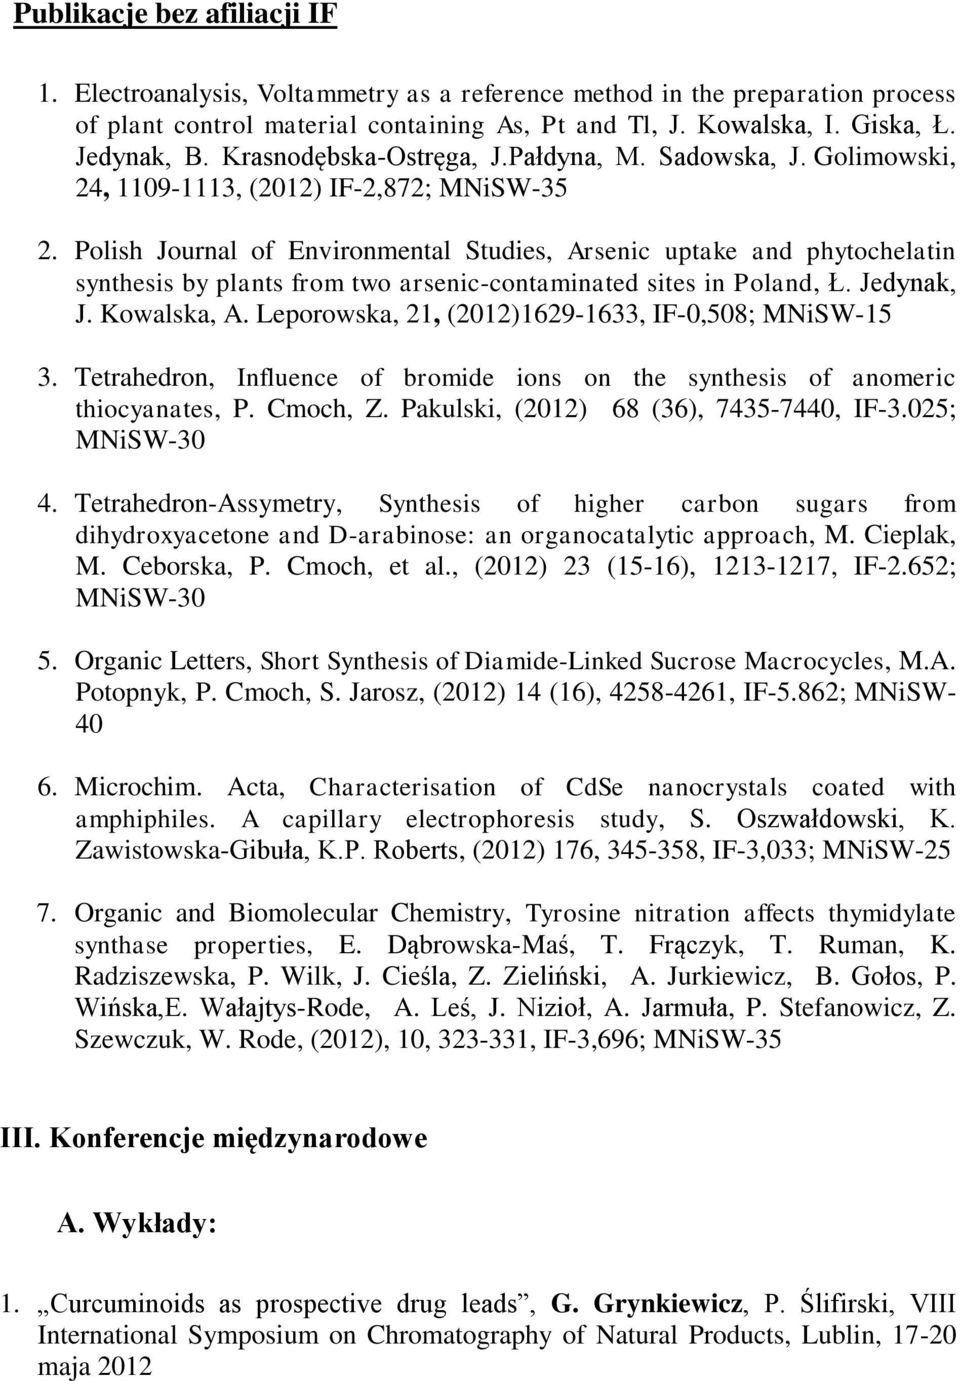 Polish Journal of Environmental Studies, Arsenic uptake and phytochelatin synthesis by plants from two arsenic-contaminated sites in Poland, Ł. Jedynak, J. Kowalska, A.